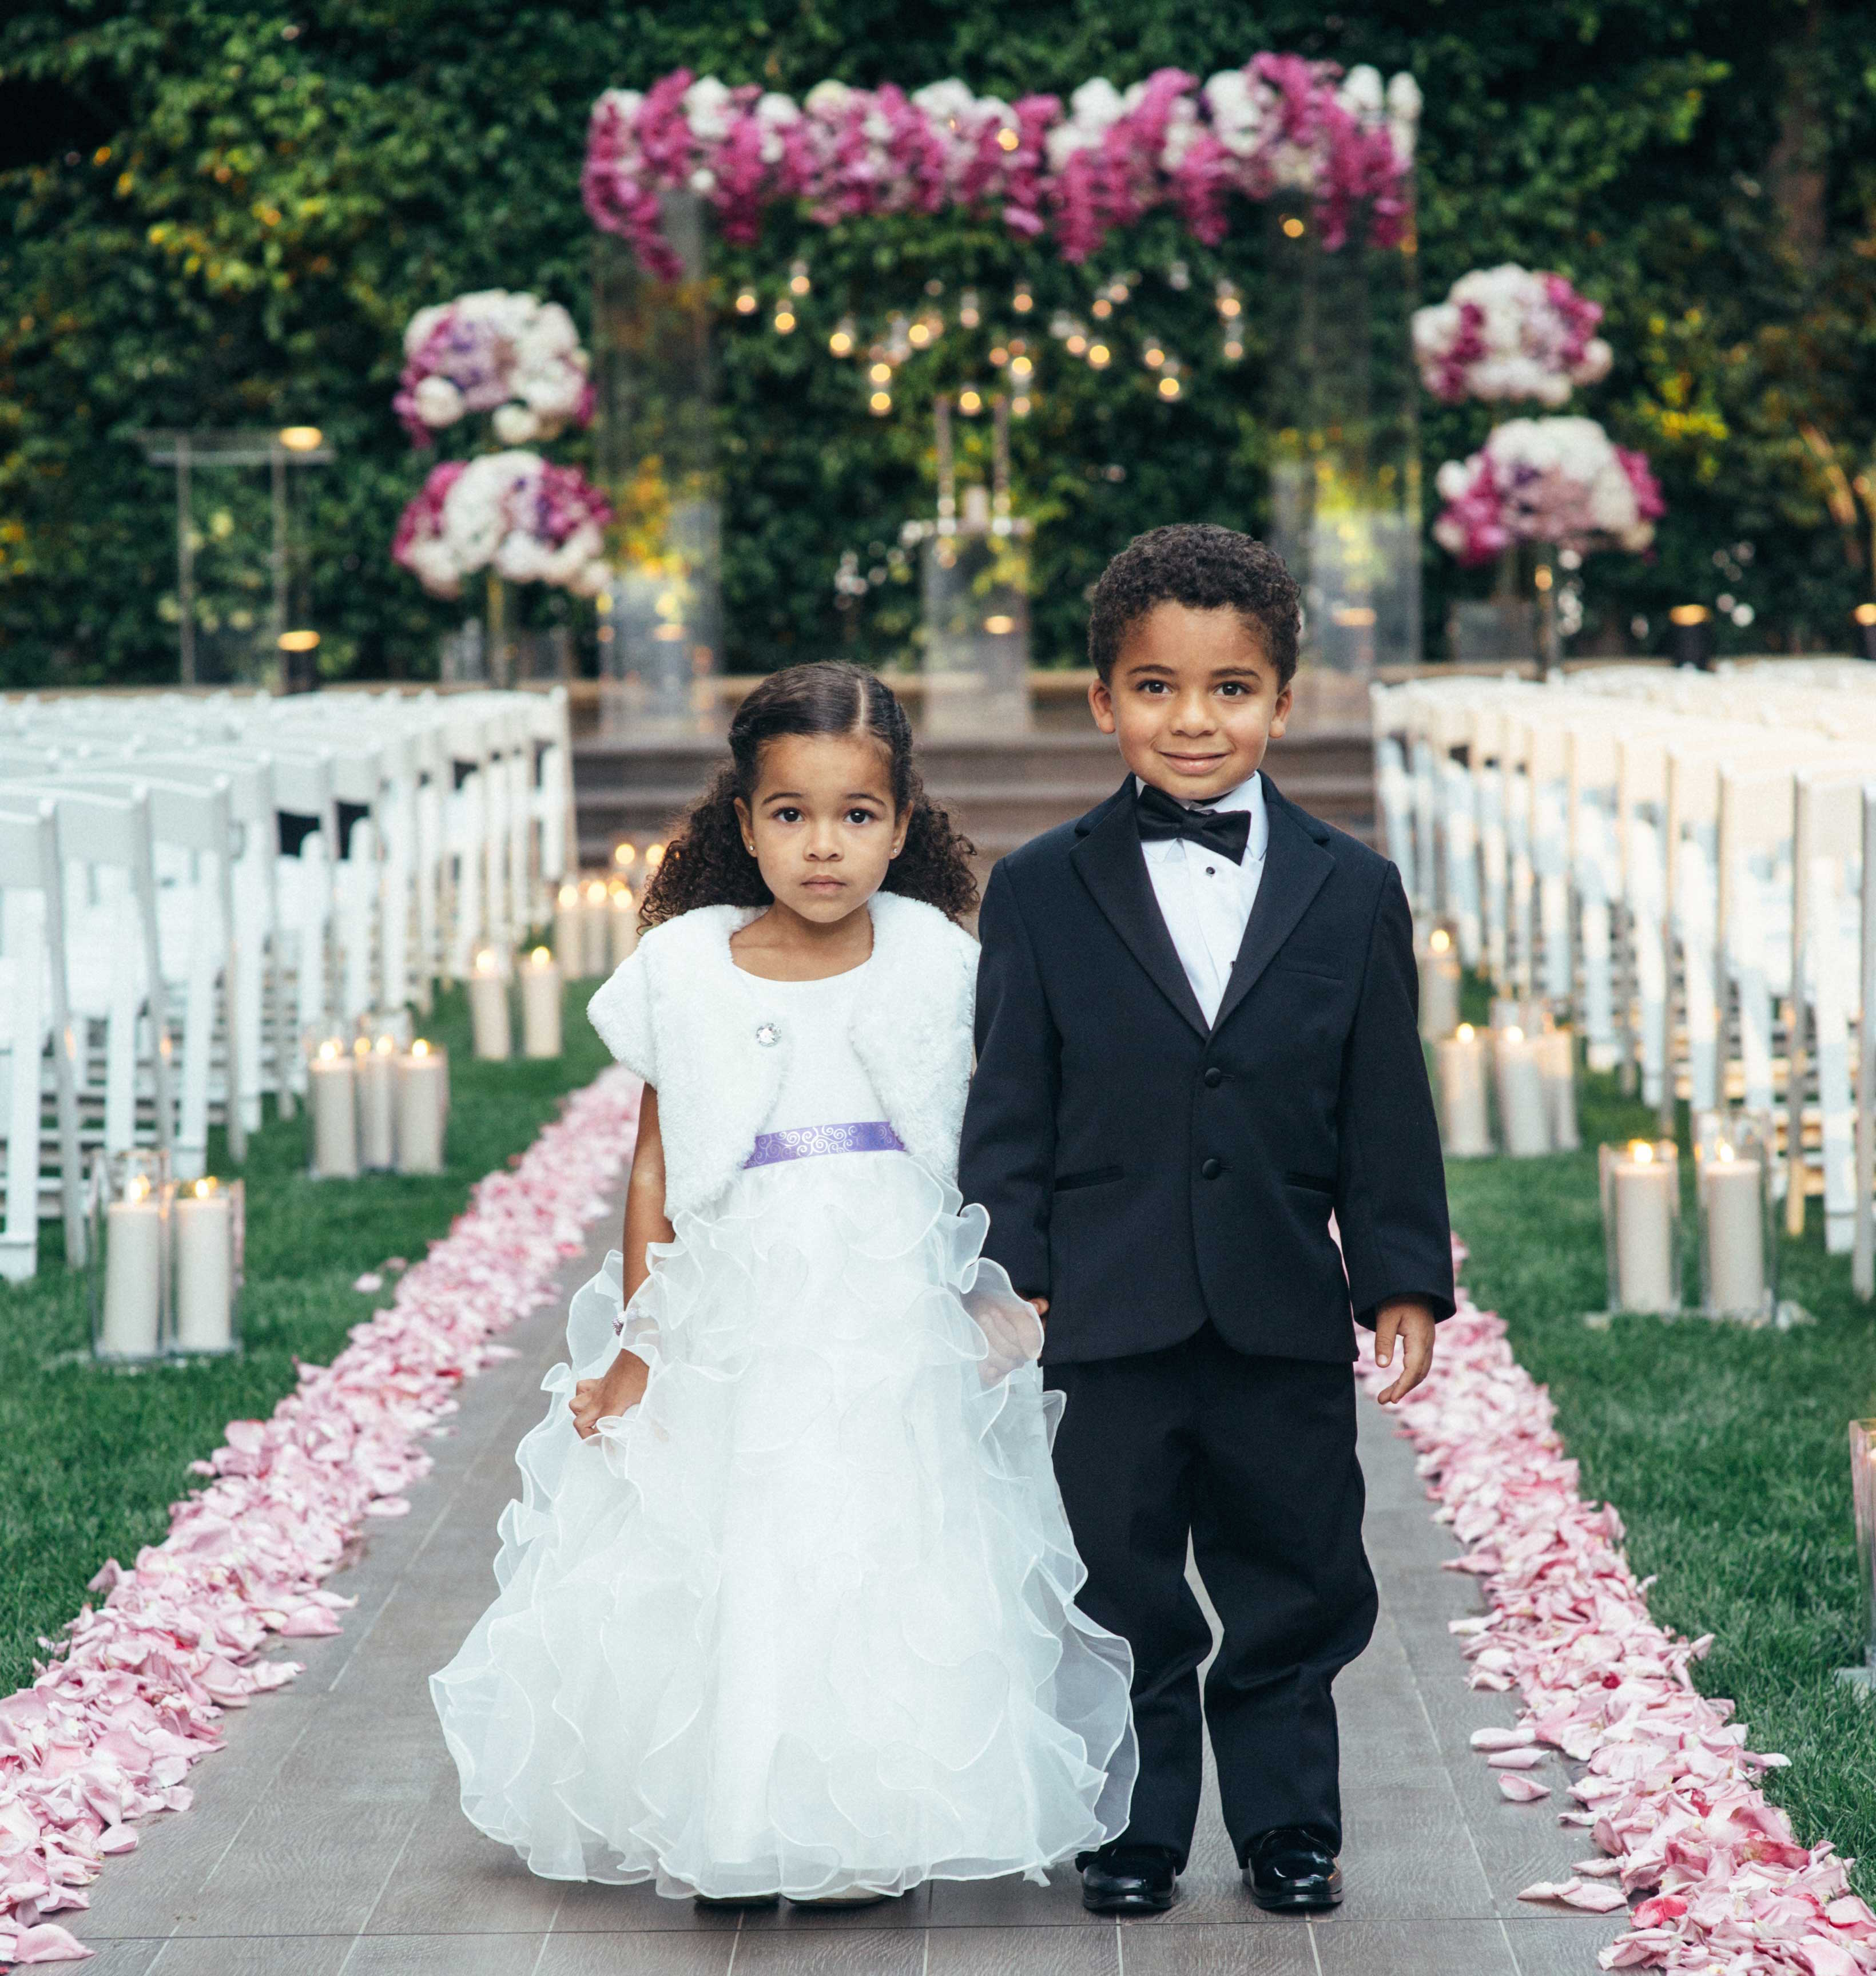 Flower girl in ruffle dress with purple ribbon and ring bearer at outdoor wedding